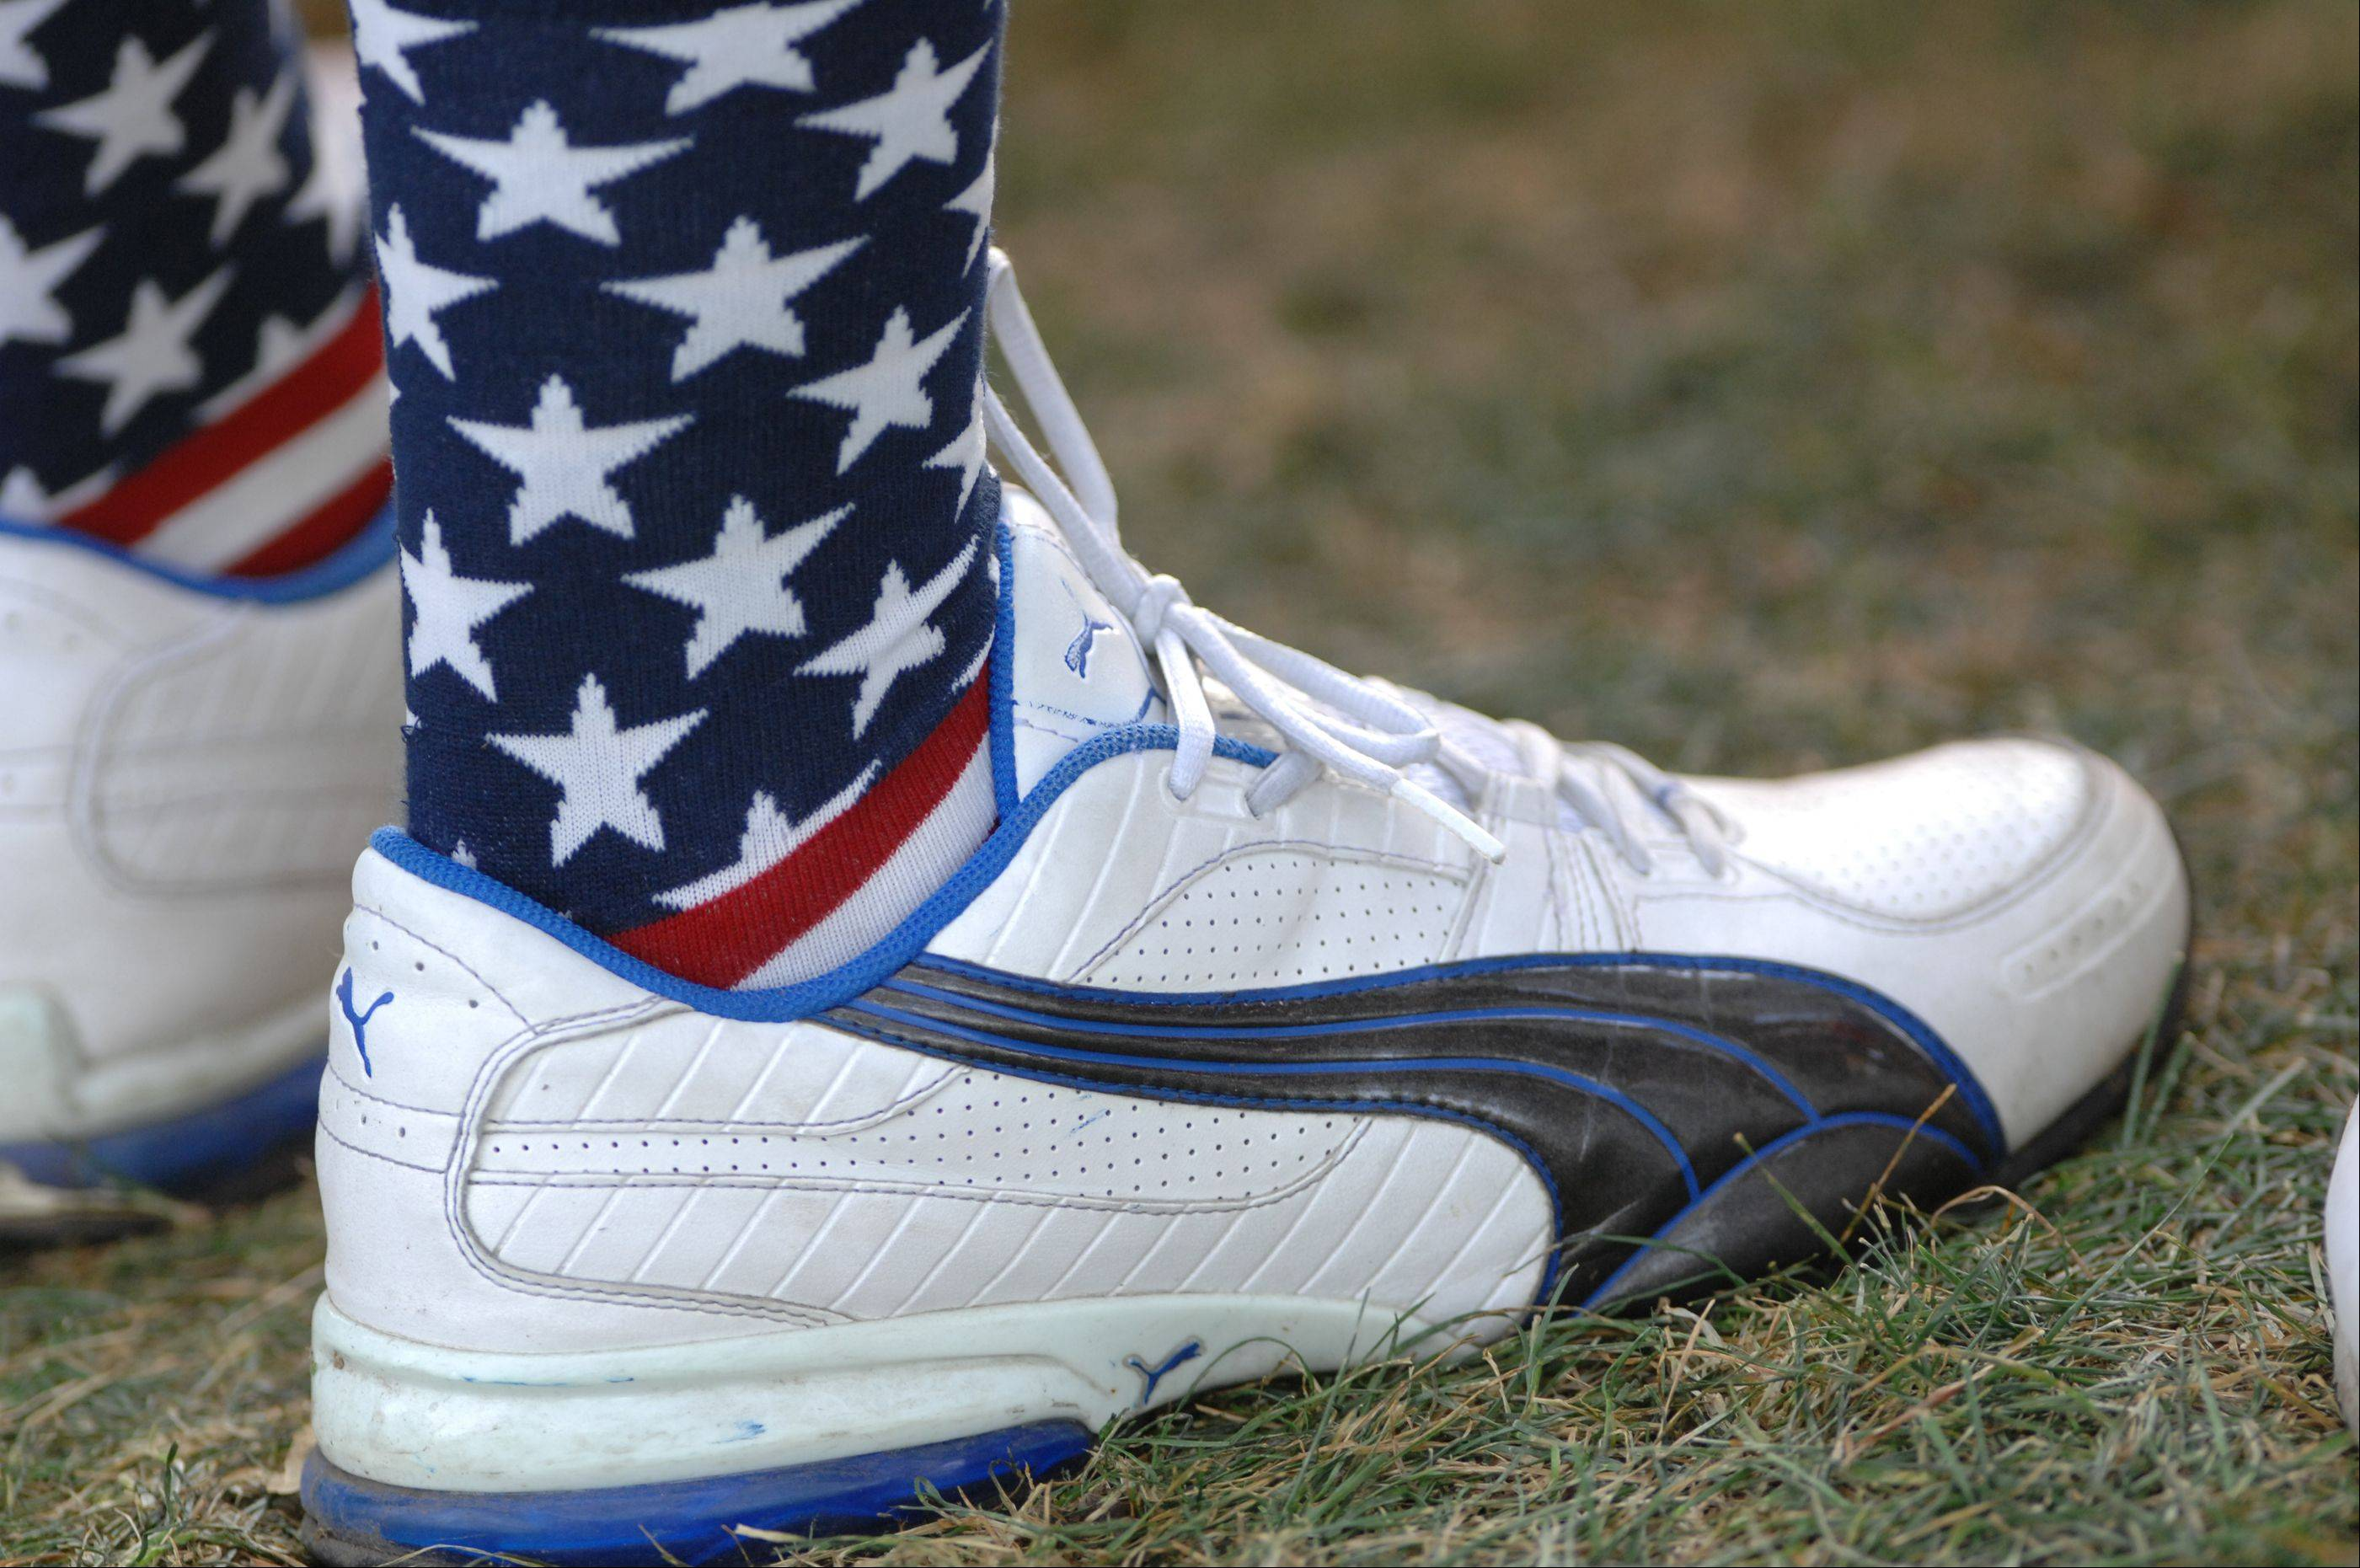 Team USA is supported right down to a pair of socks during day 2 of the 2012 Ryder Cup at Medinah Country Club.